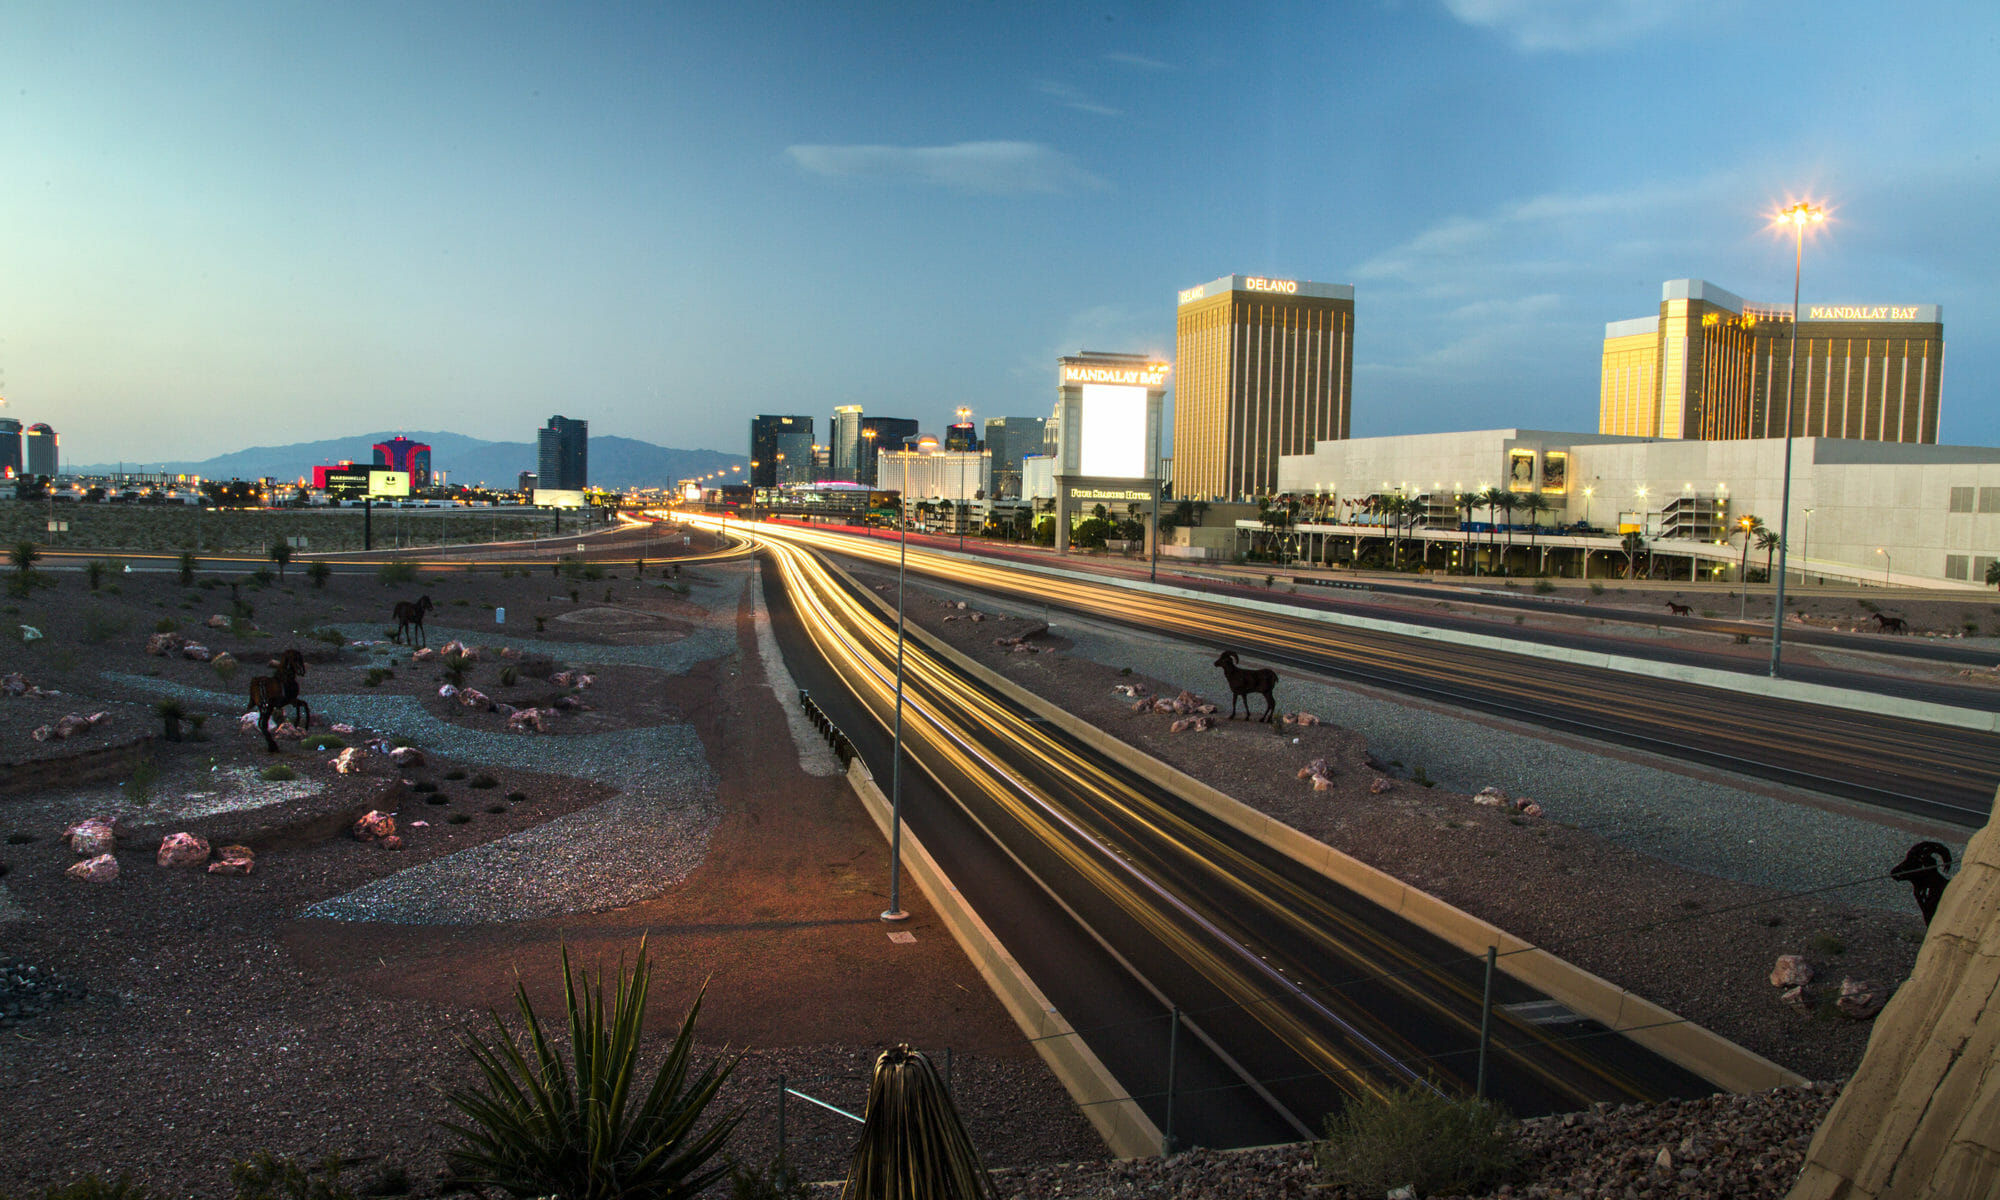 Early morning photo of the I-15 near the Las Vegas Strip